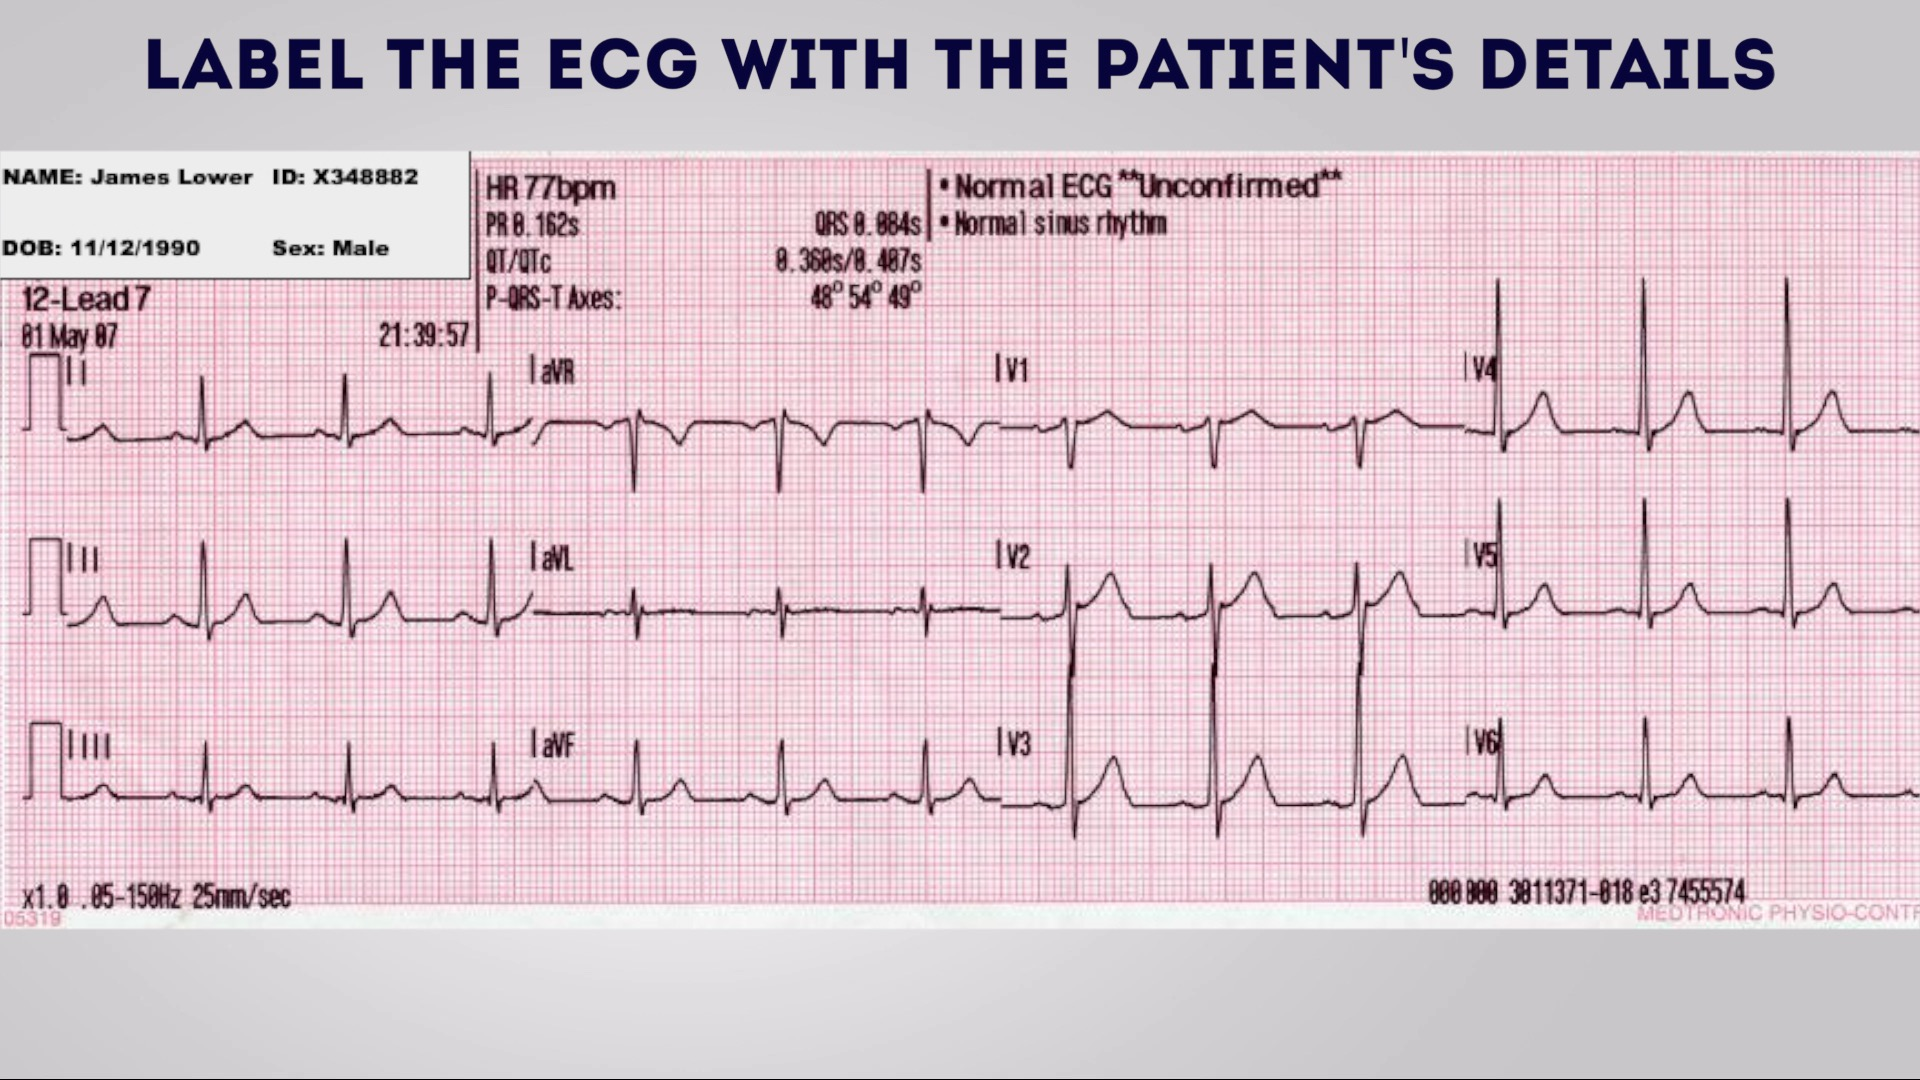 Label the ECG with the patient's details